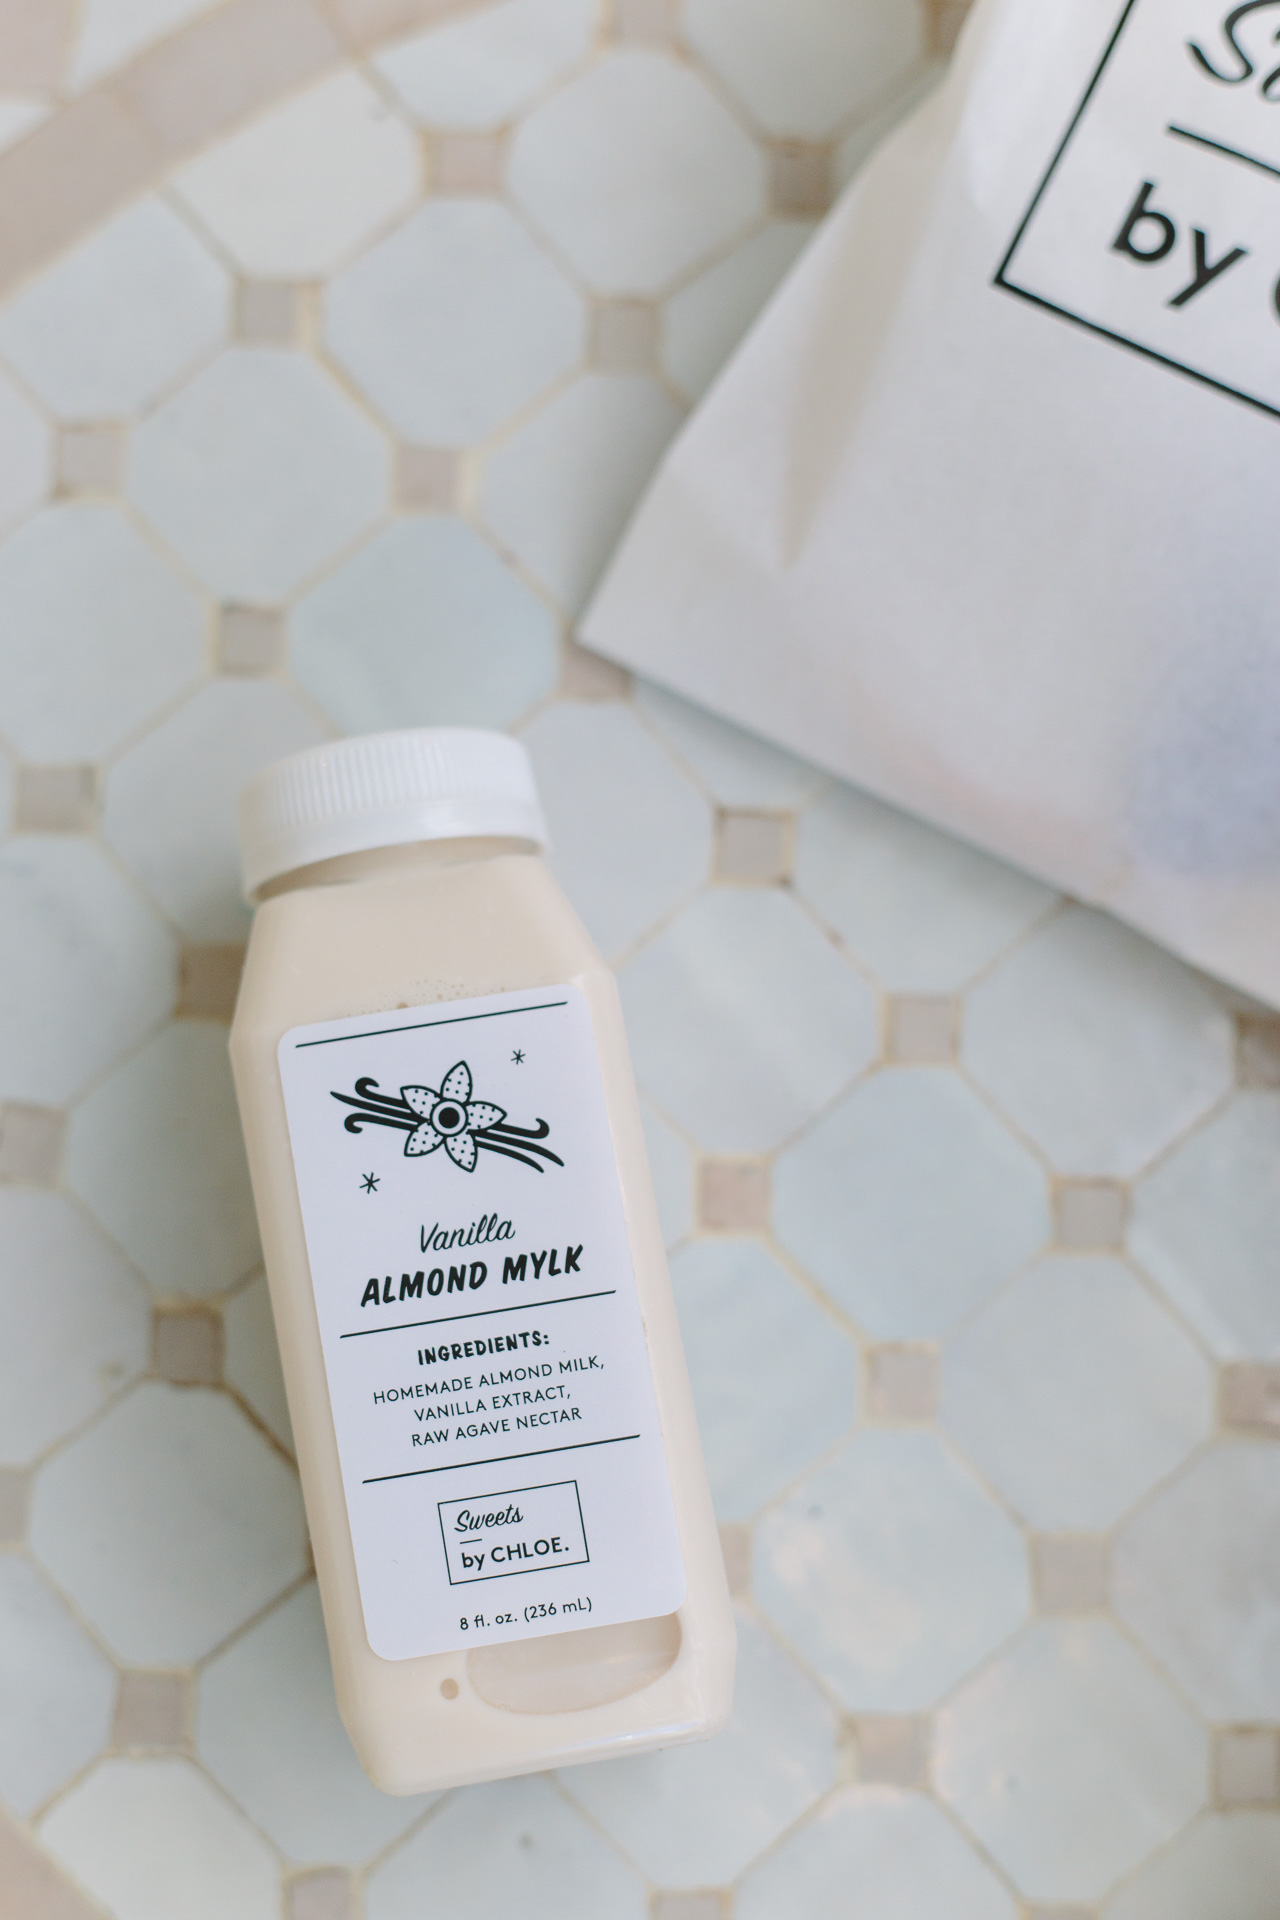 vanilla almond milk at Sweets by Chloe